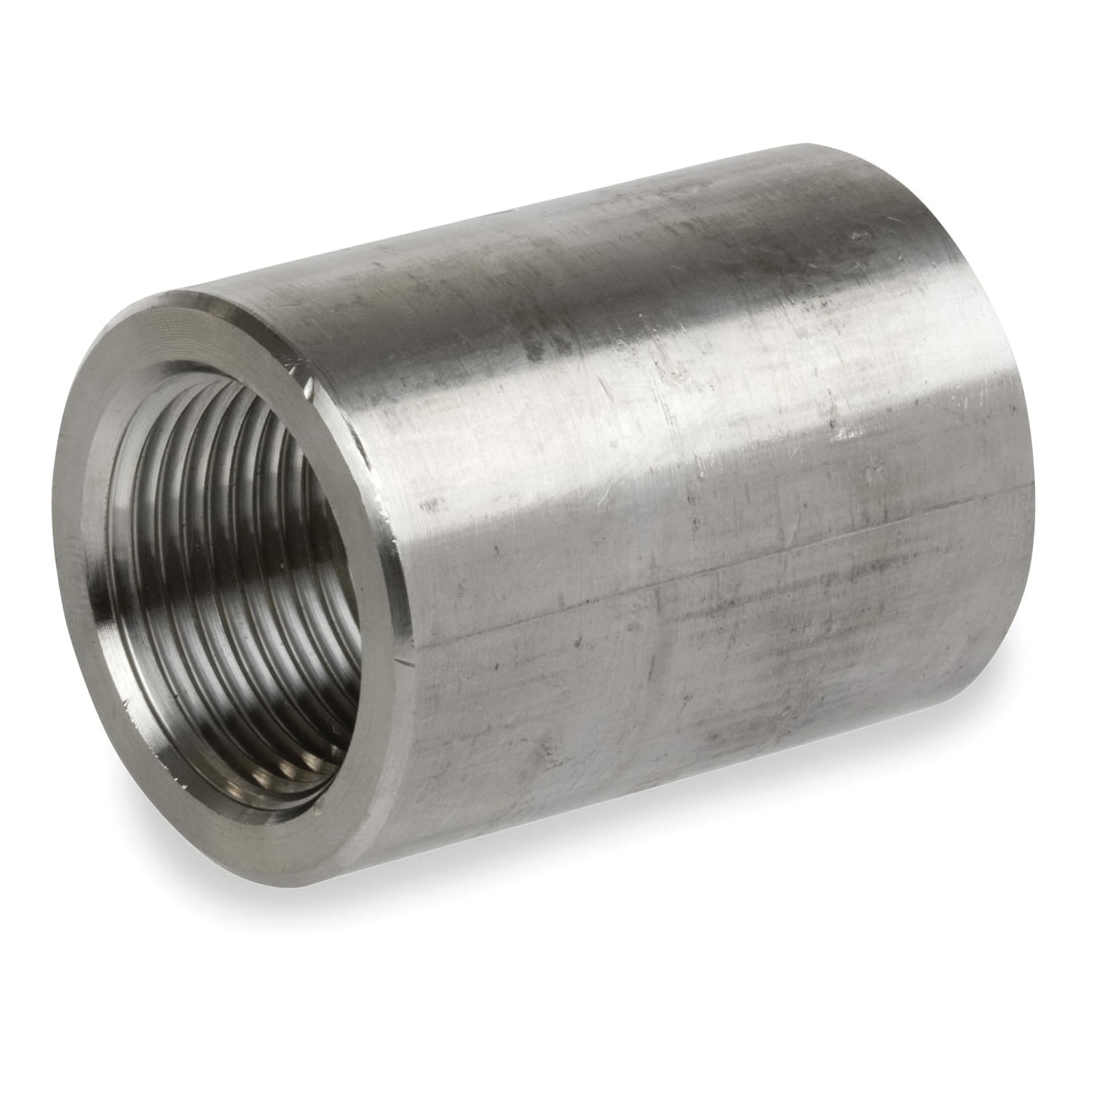 Smith-Cooper® S4034CP010 Full Coupling, 1 in, Threaded, 3000 lb, 304L Stainless Steel